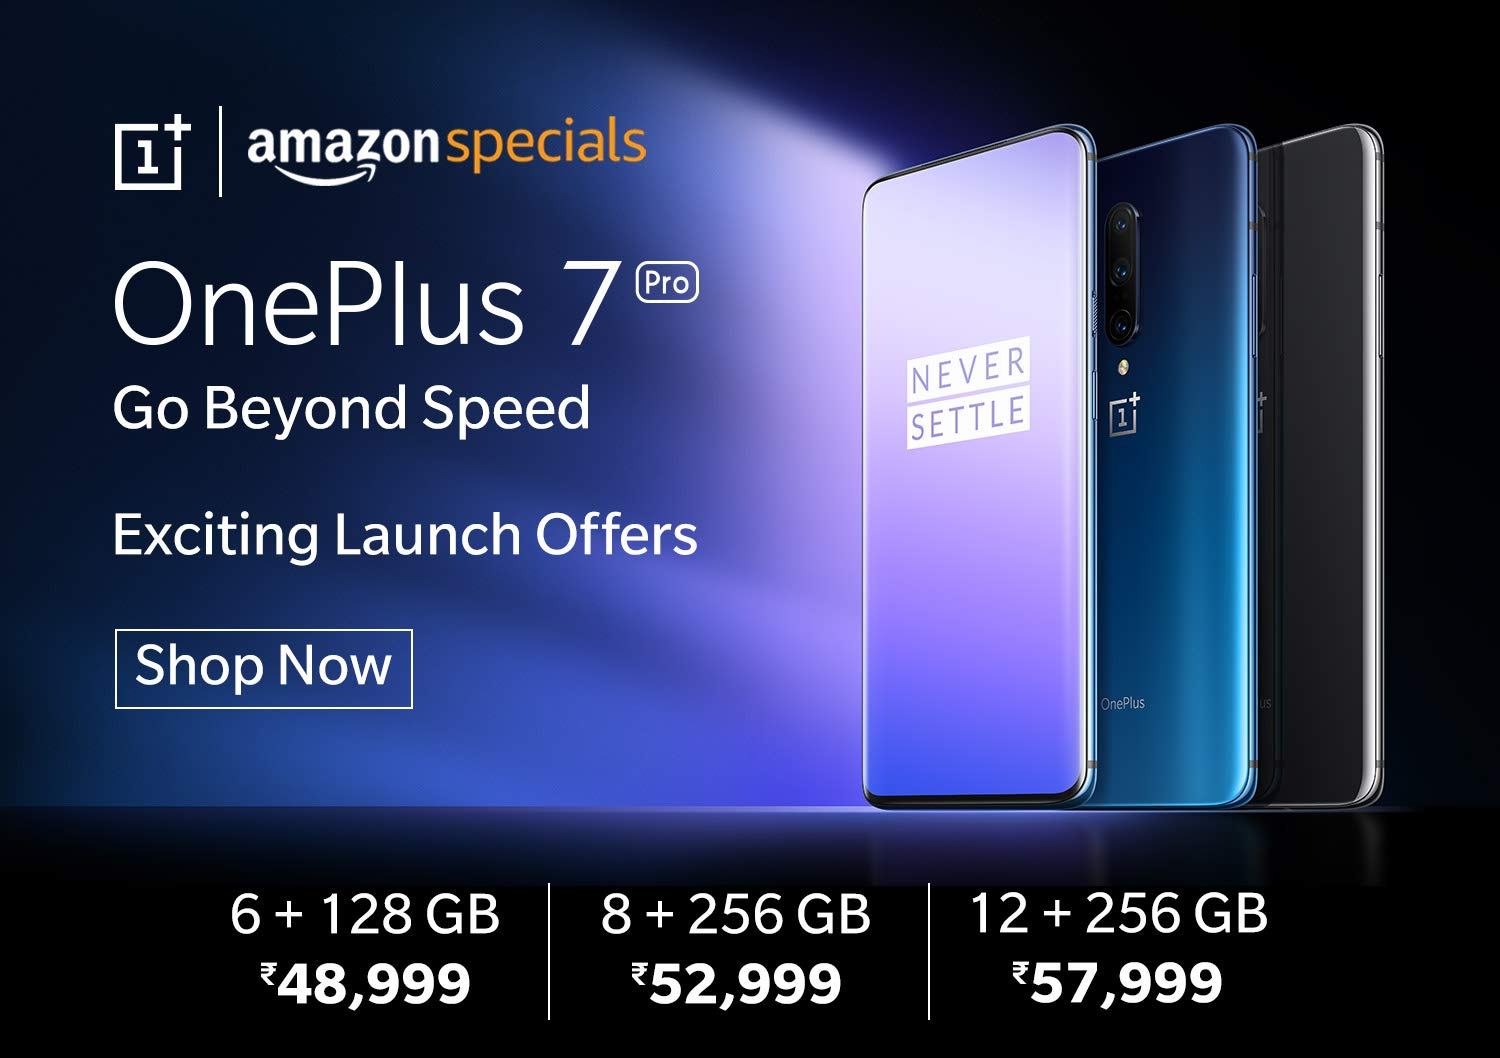 https://images-eu.ssl-images-amazon.com/images/G/31/img19/Wireless/OnePlus/OnePlus7/OnePlus7Pro/PostLaunch_17th/LP/1500_top-banner_1._CB464461502_.jpg